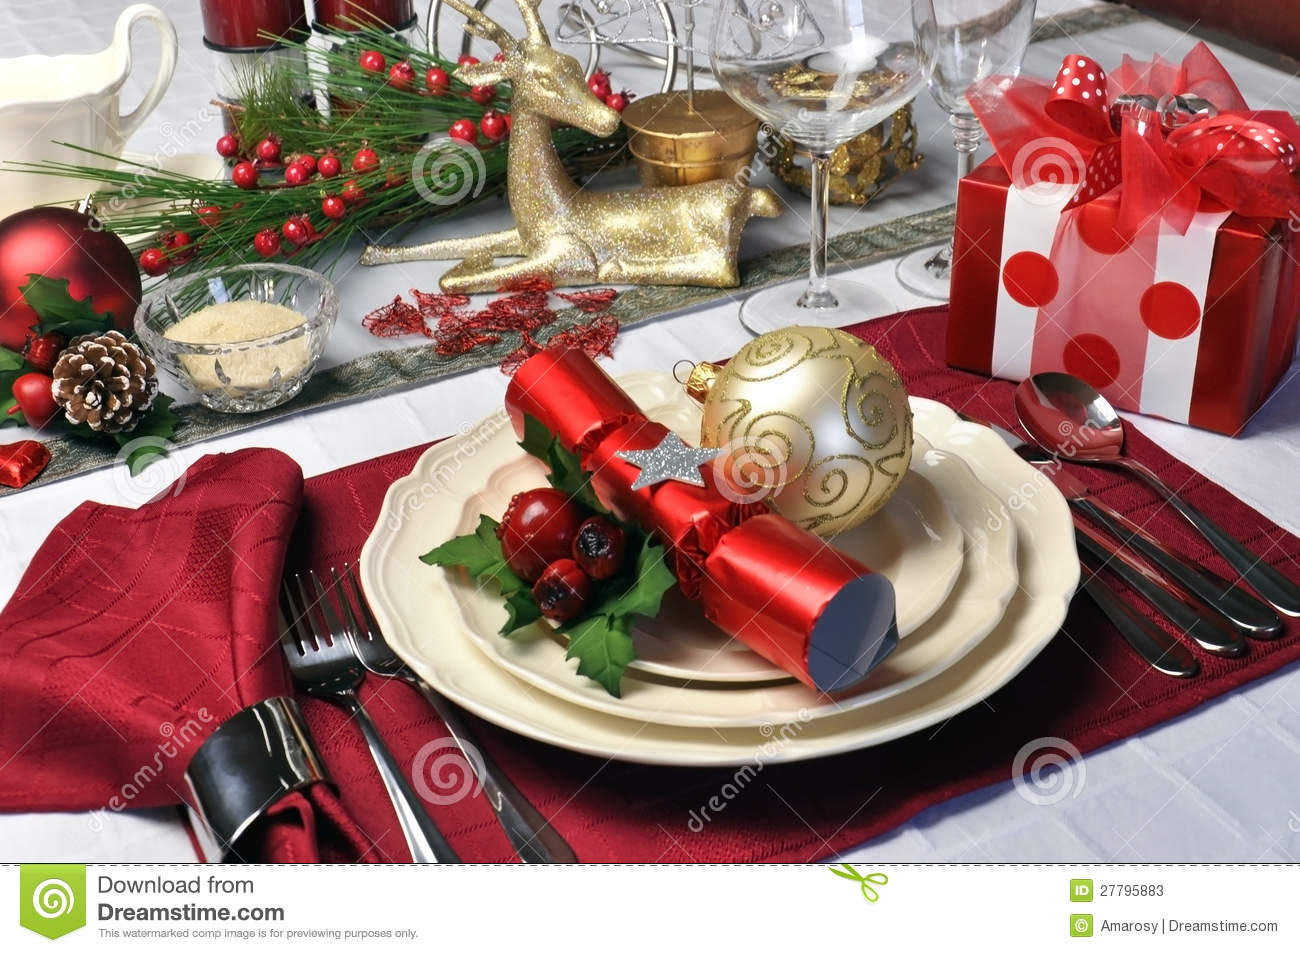 Red christmas day table setting with present stock image for Christmas place setting gift ideas